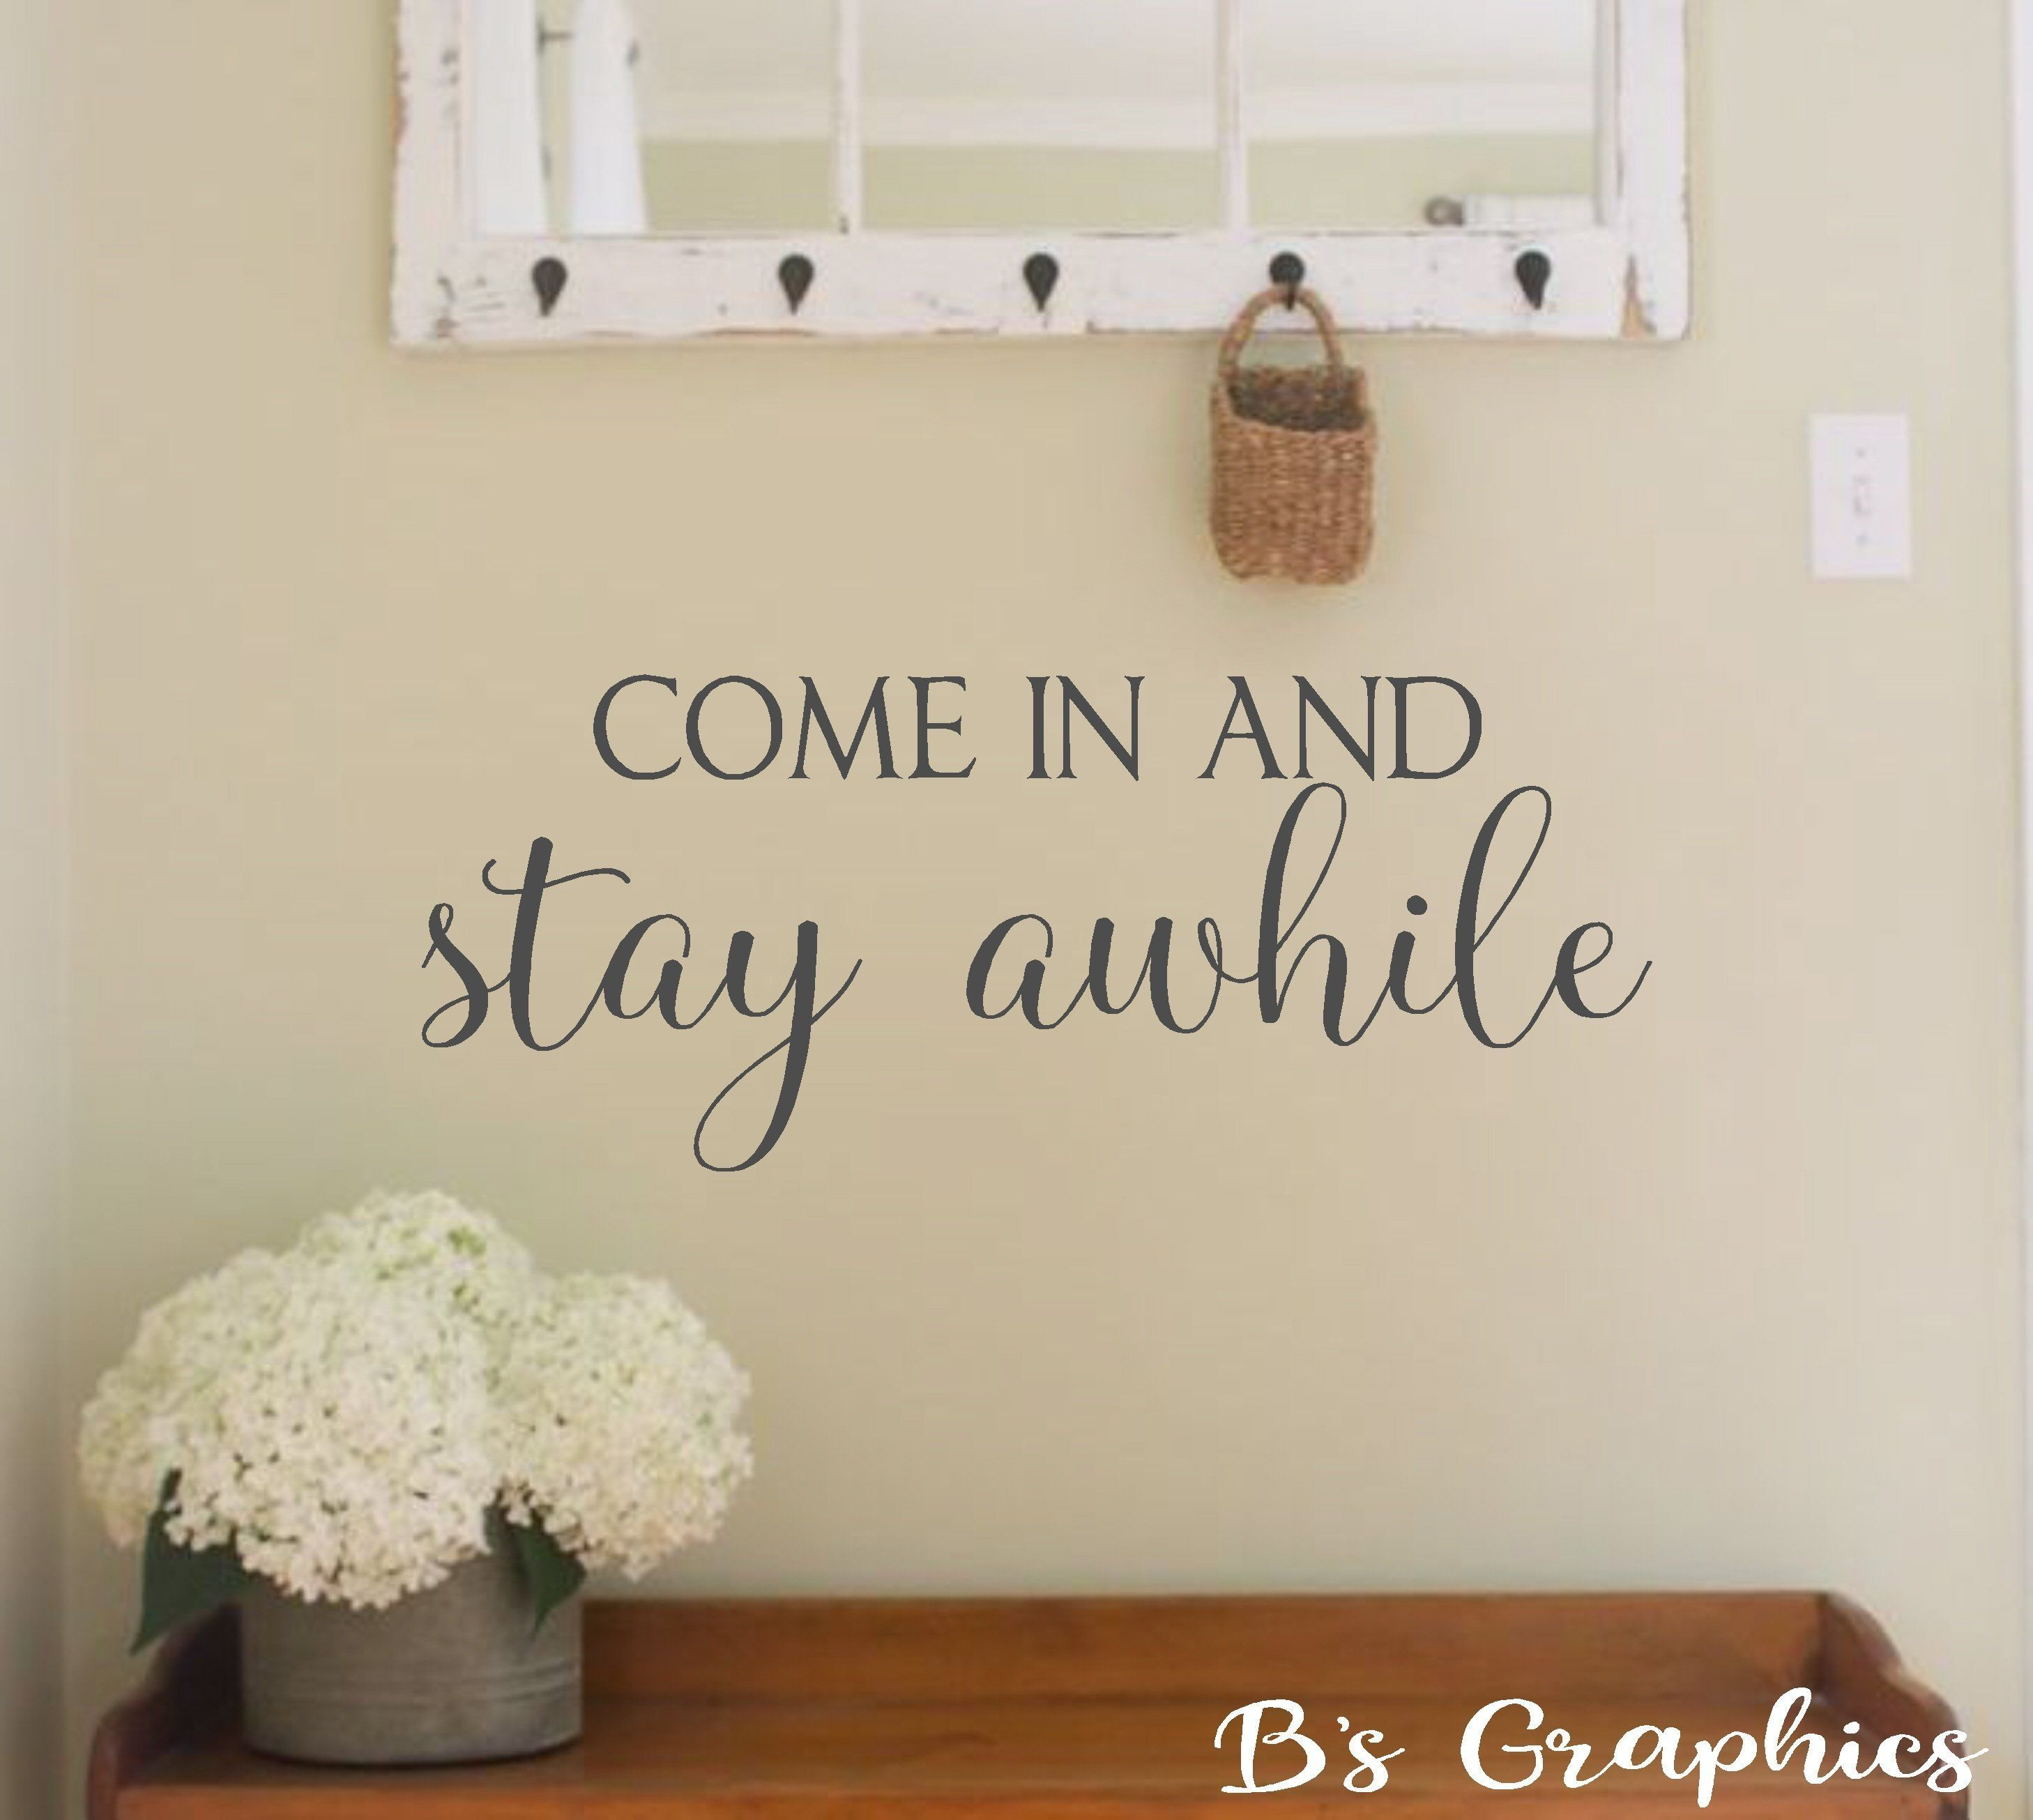 Come In And Stay Awhile Vinyl Wall Decal Wall Decor Welcome Etsy Family Wall Decals Vinyl Wall Decals Vinyl Wall Lettering